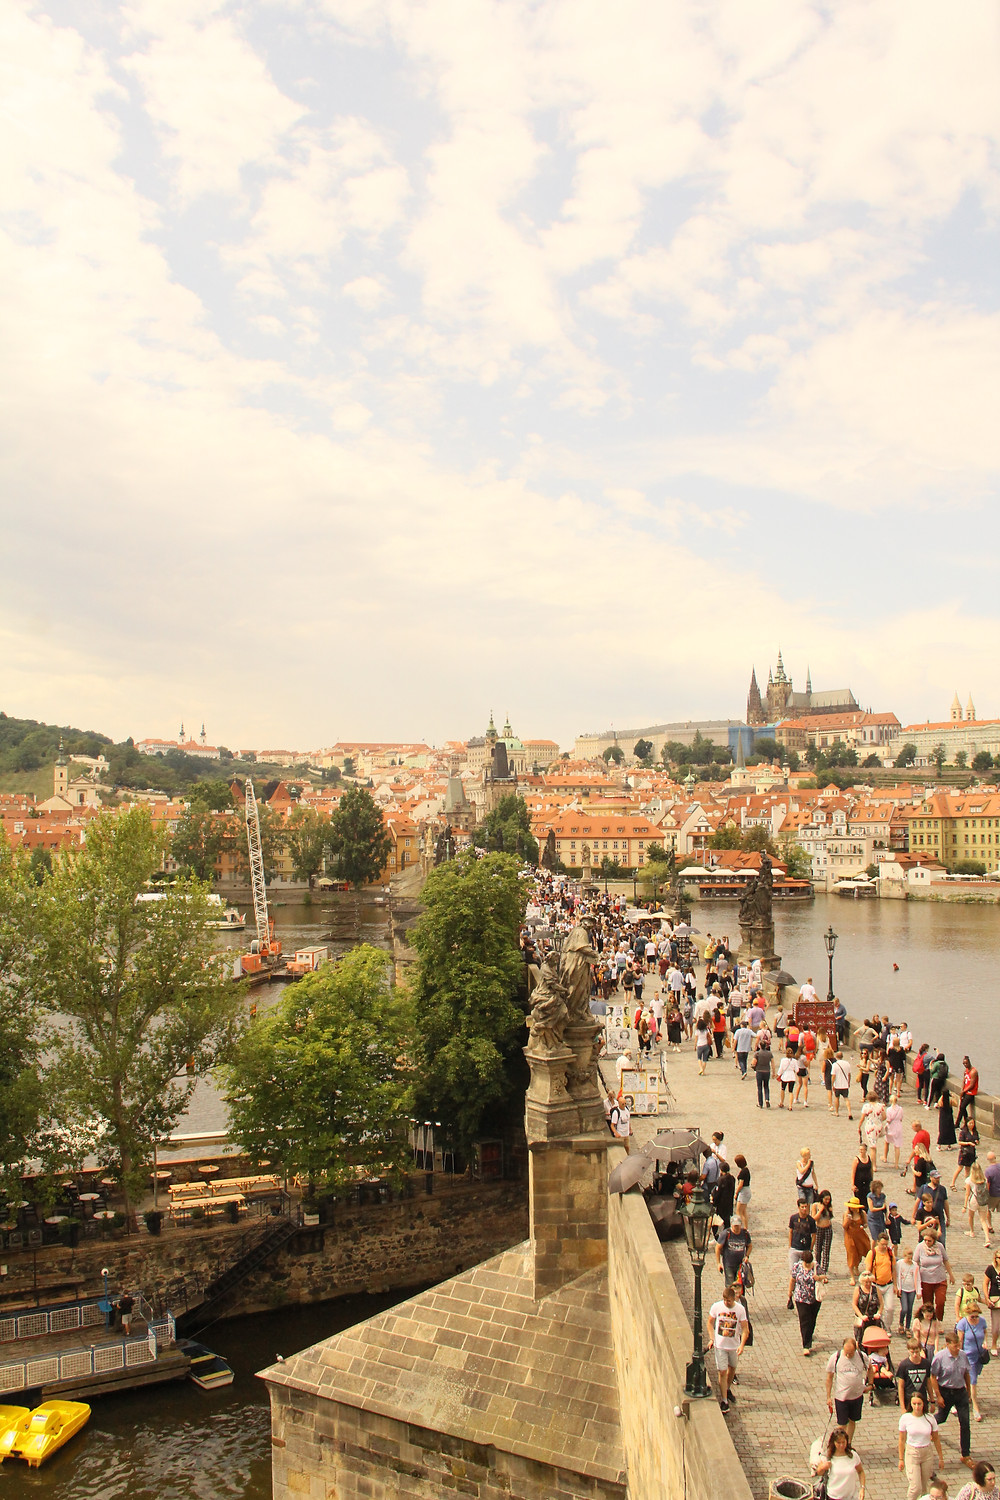 Charles bridge in Prague which is overcrowded